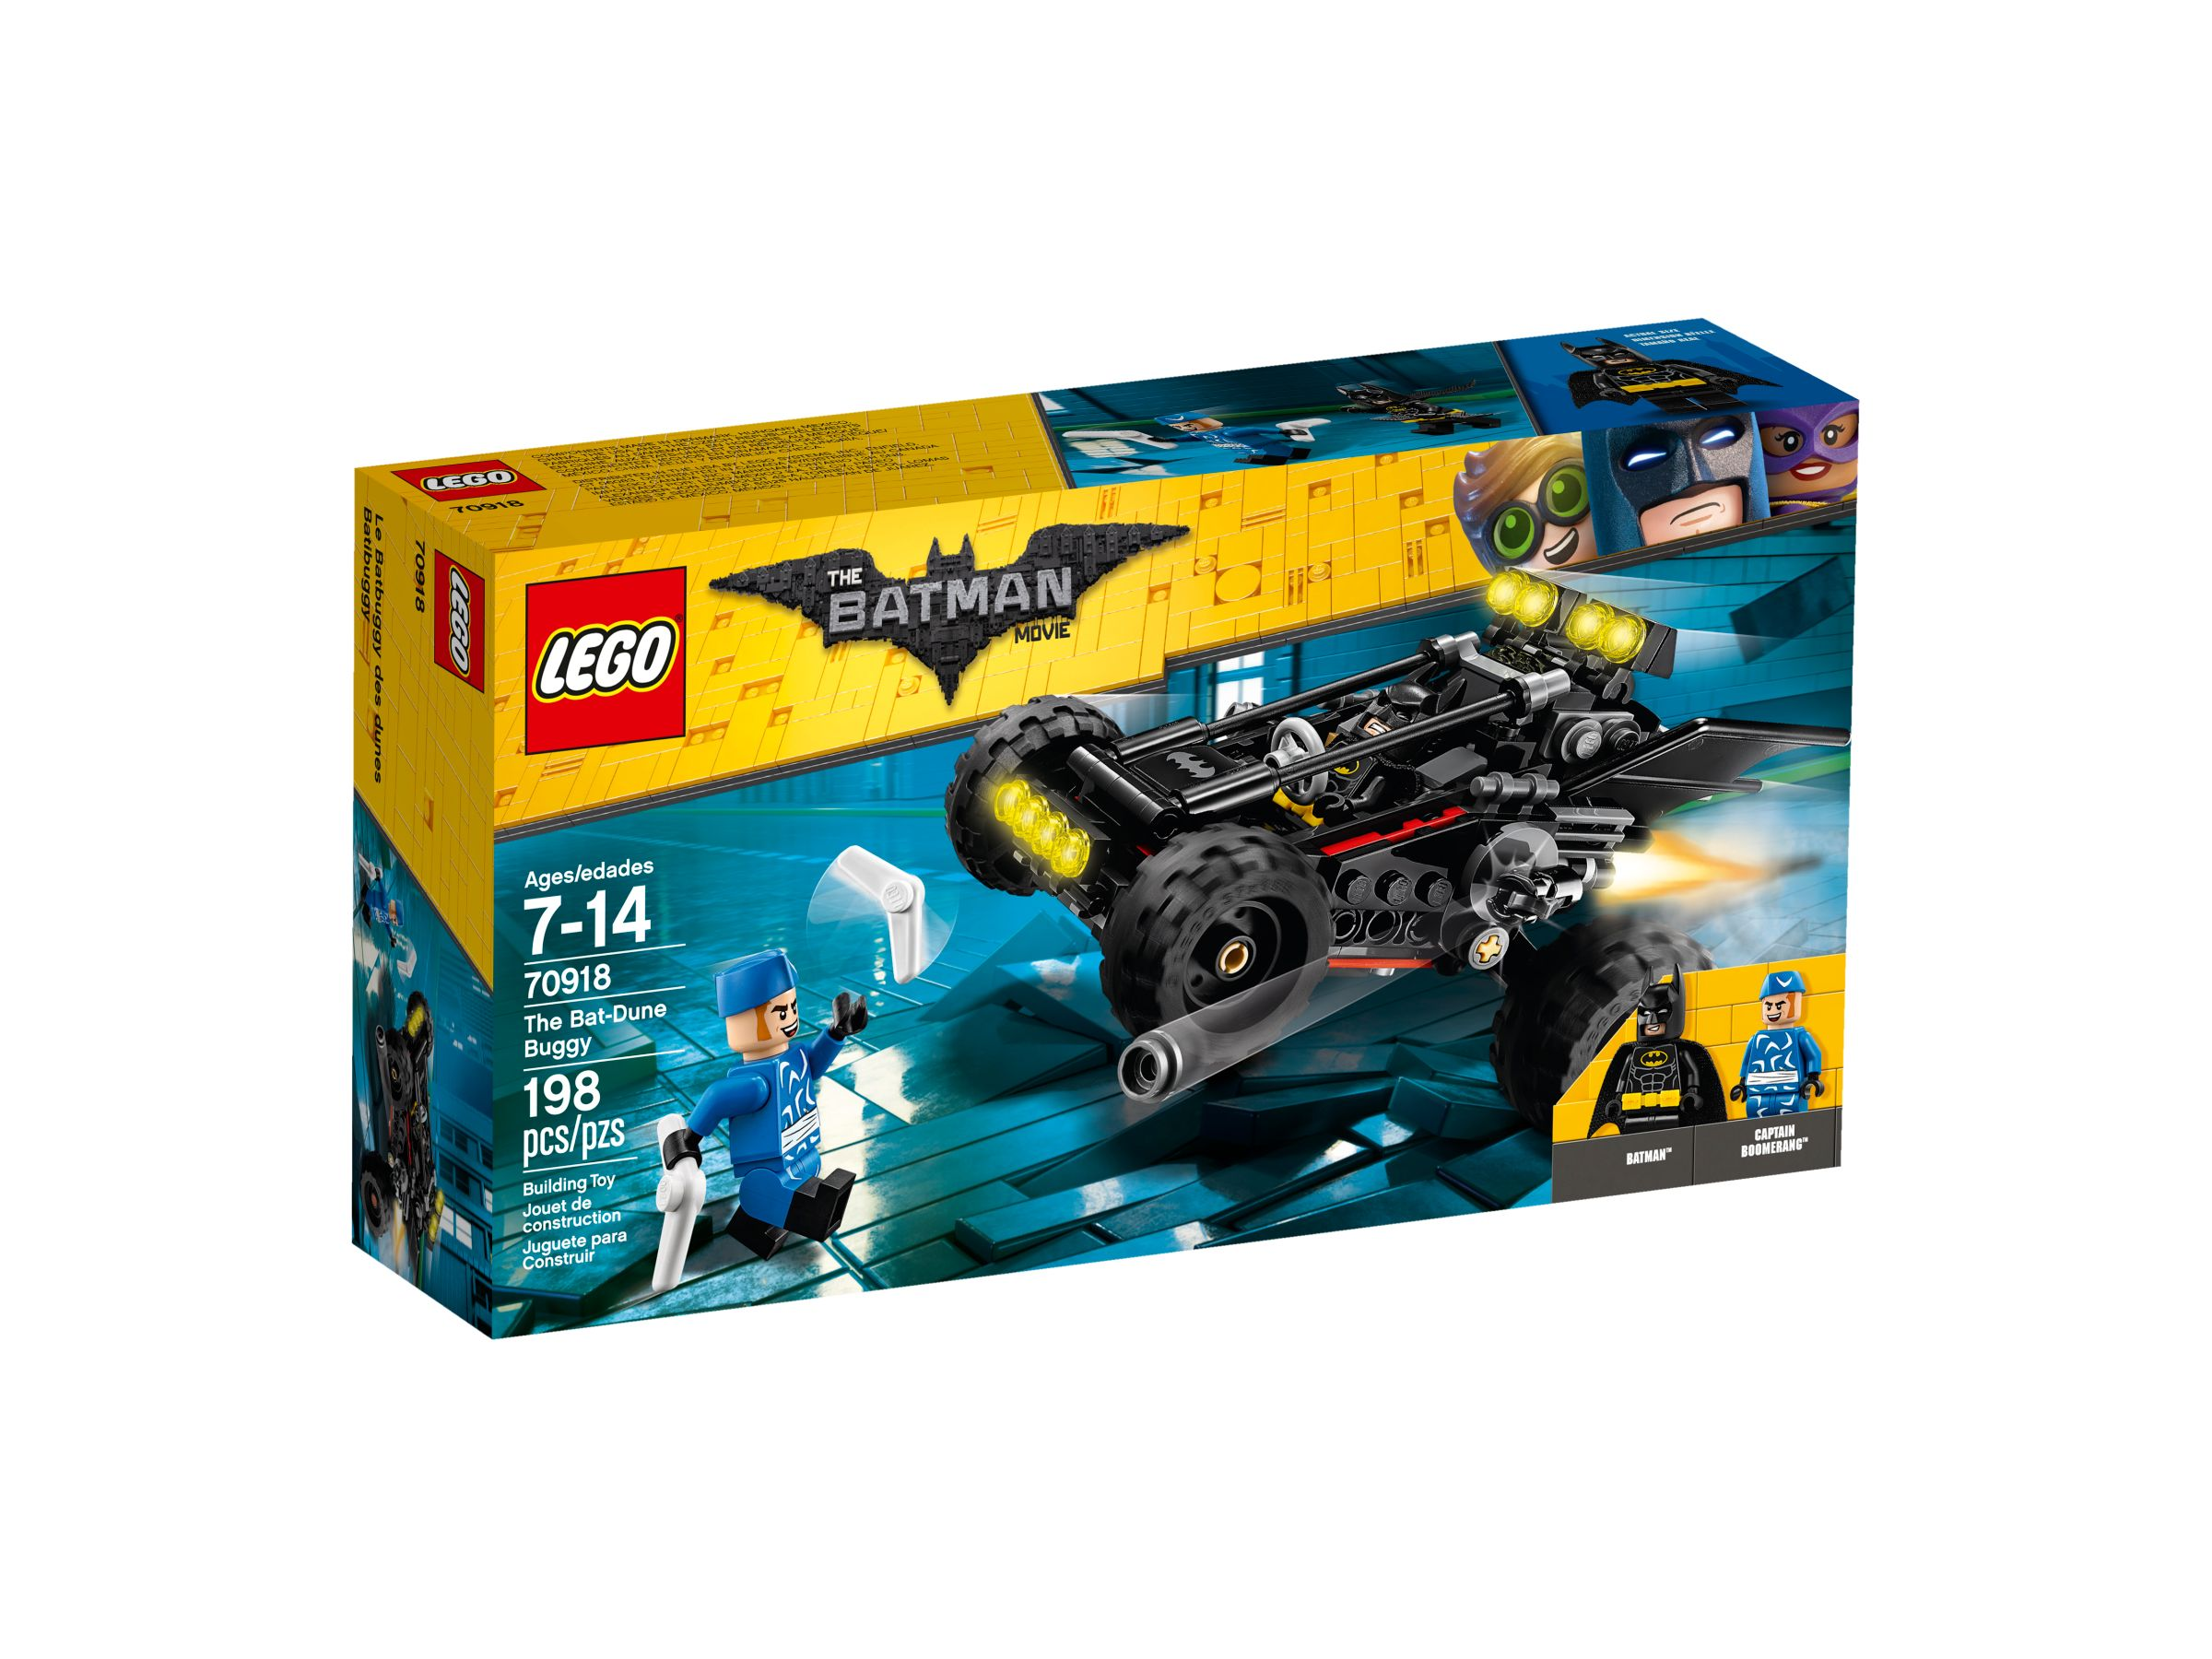 LEGO The LEGO Batman Movie 70918 Batman Dünenbuggy LEGO_70918_alt1.jpg